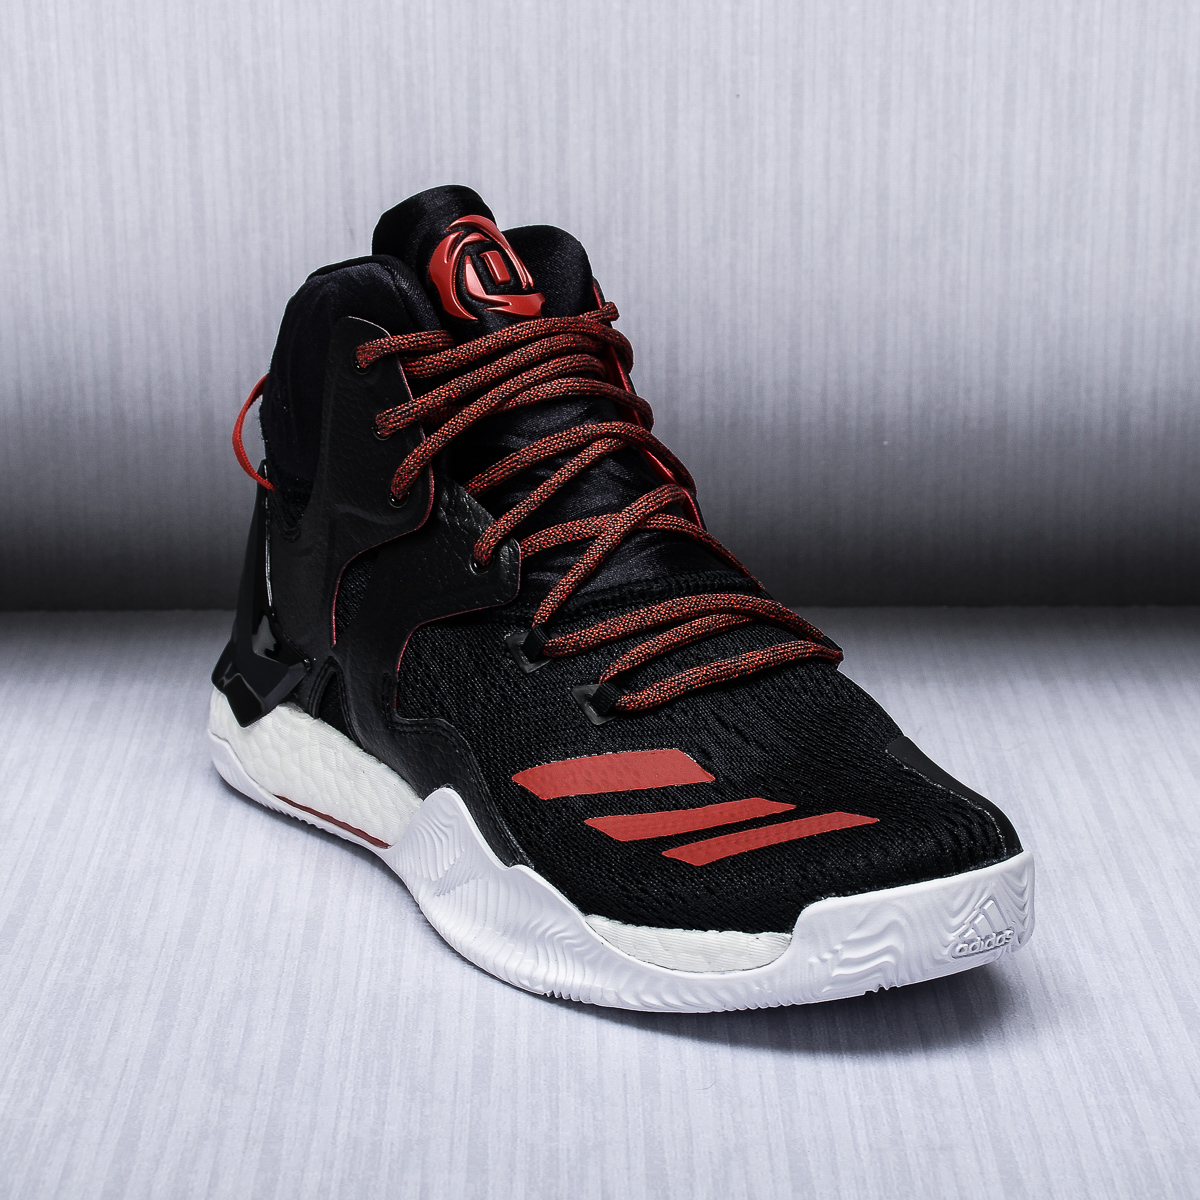 adidas D Rose 7 - BASKETBALL SHOES Adidas basketball shoes ...